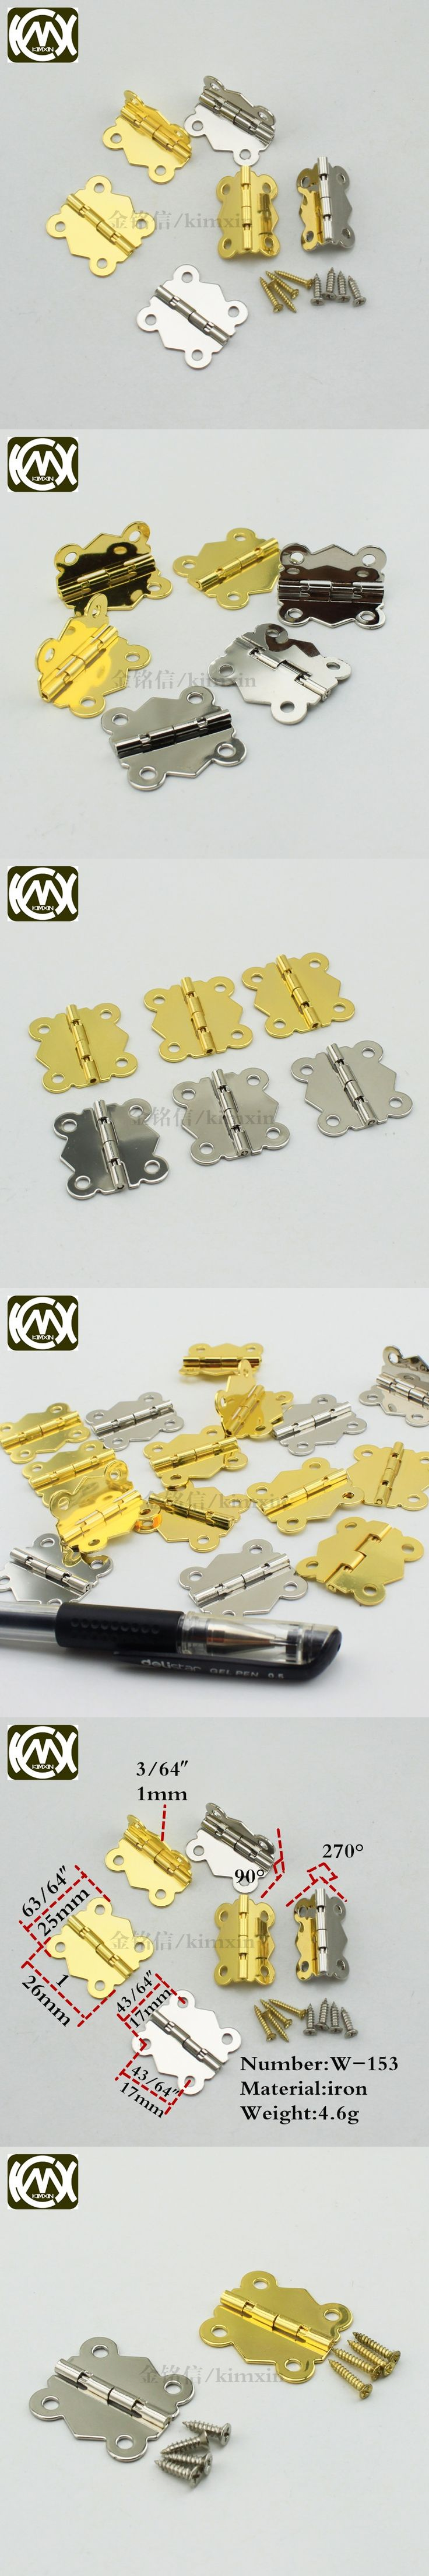 25*26mm 50pc In stock 4 hole small box hinge Jewelry box hardware 90degrees plum furniture accessories metal hinges kimxin w-153